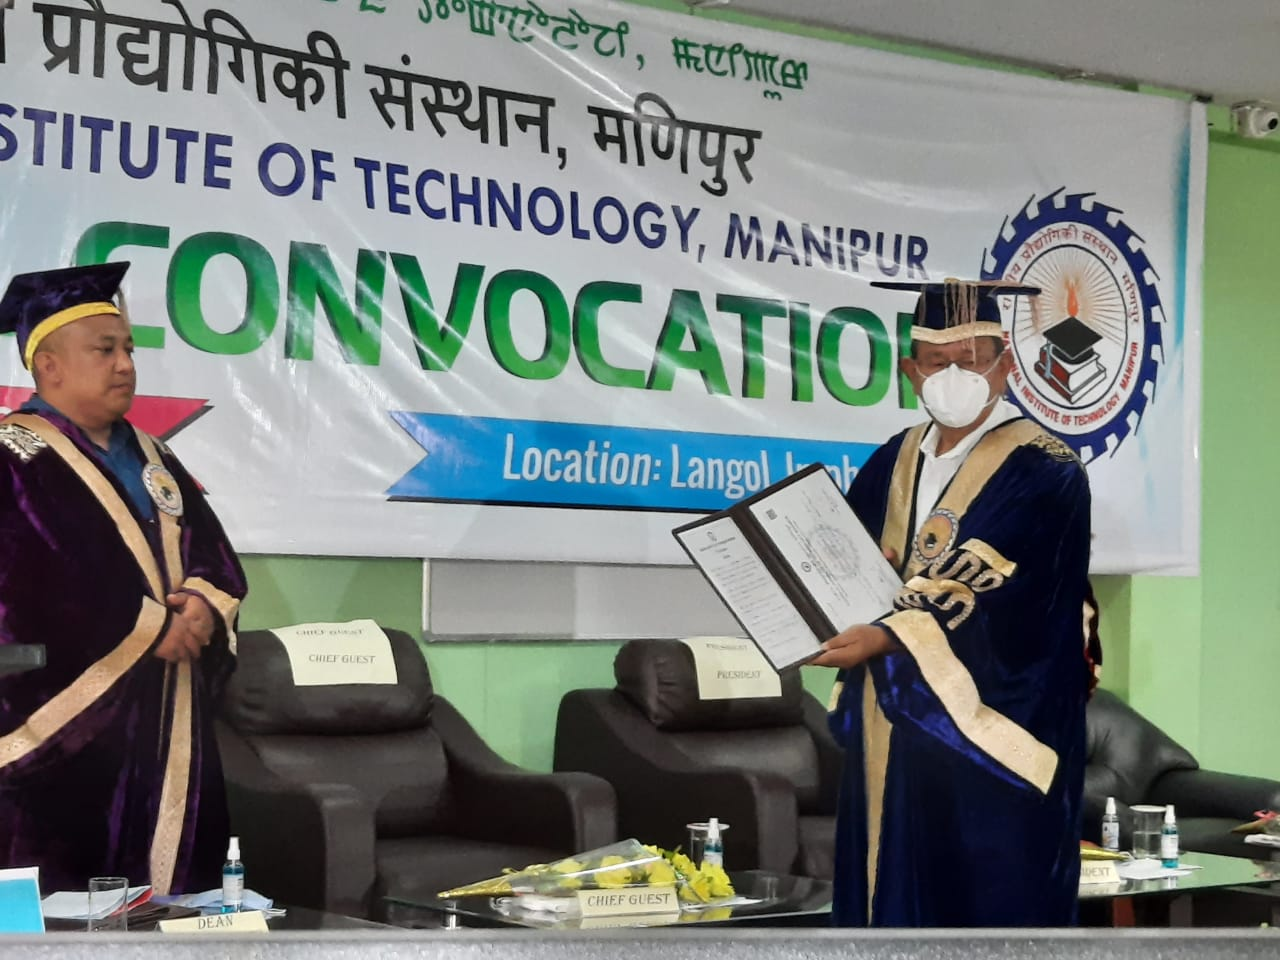 7th Convocation of NIT, Manipur organised